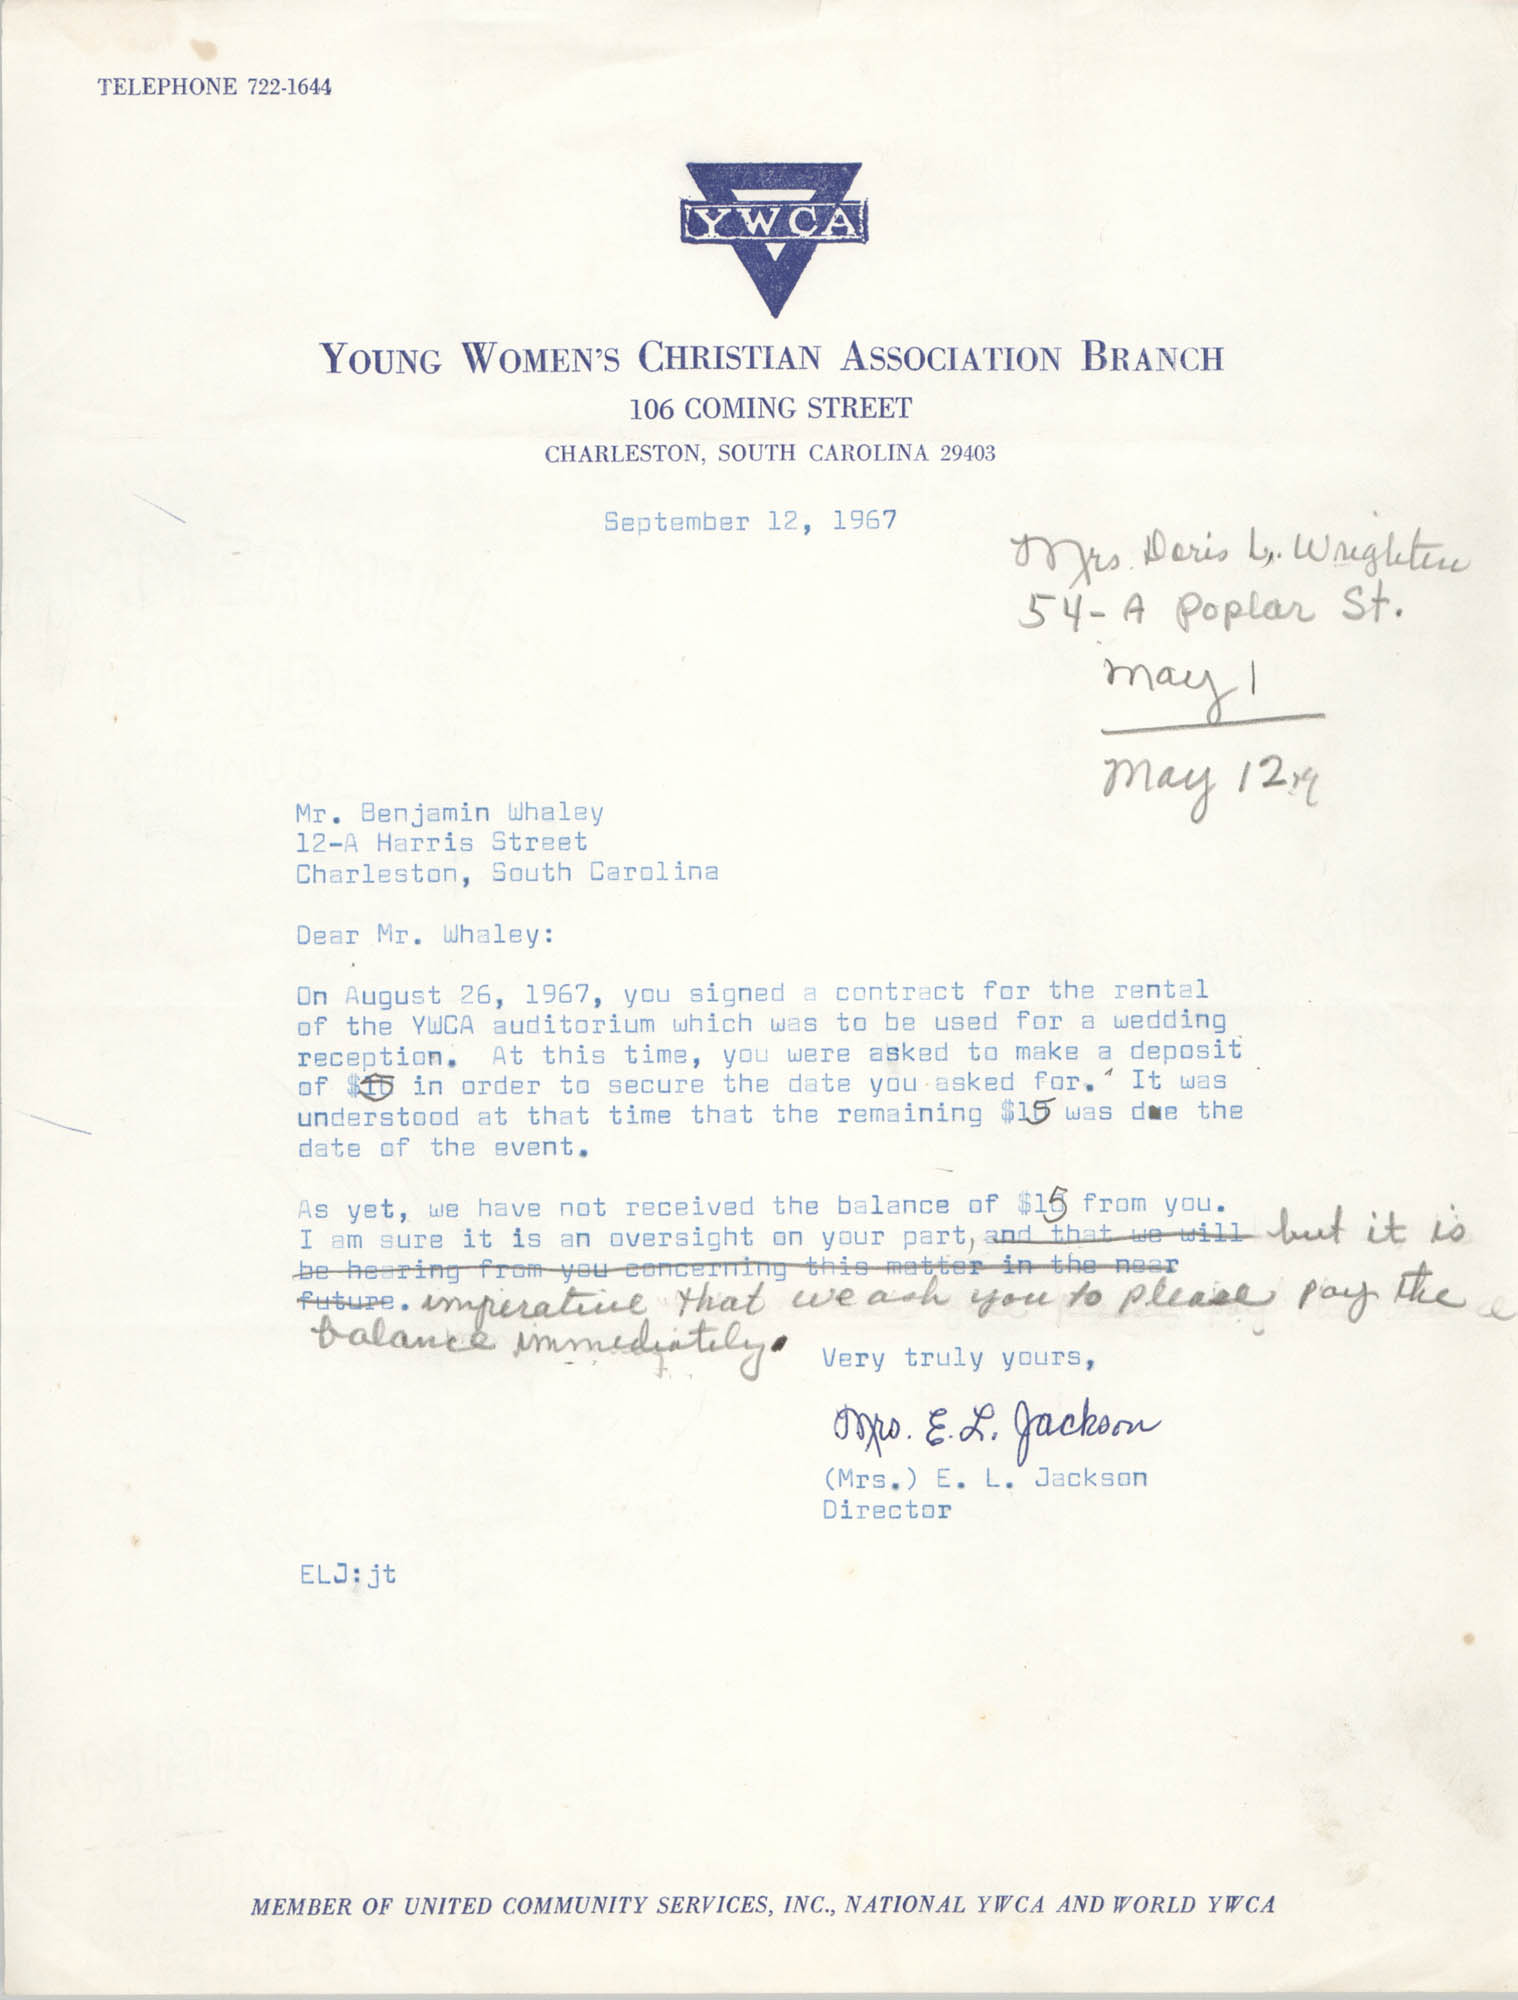 Letter from Christine O. Jackson to Benjamin Whaley, September 12, 1967